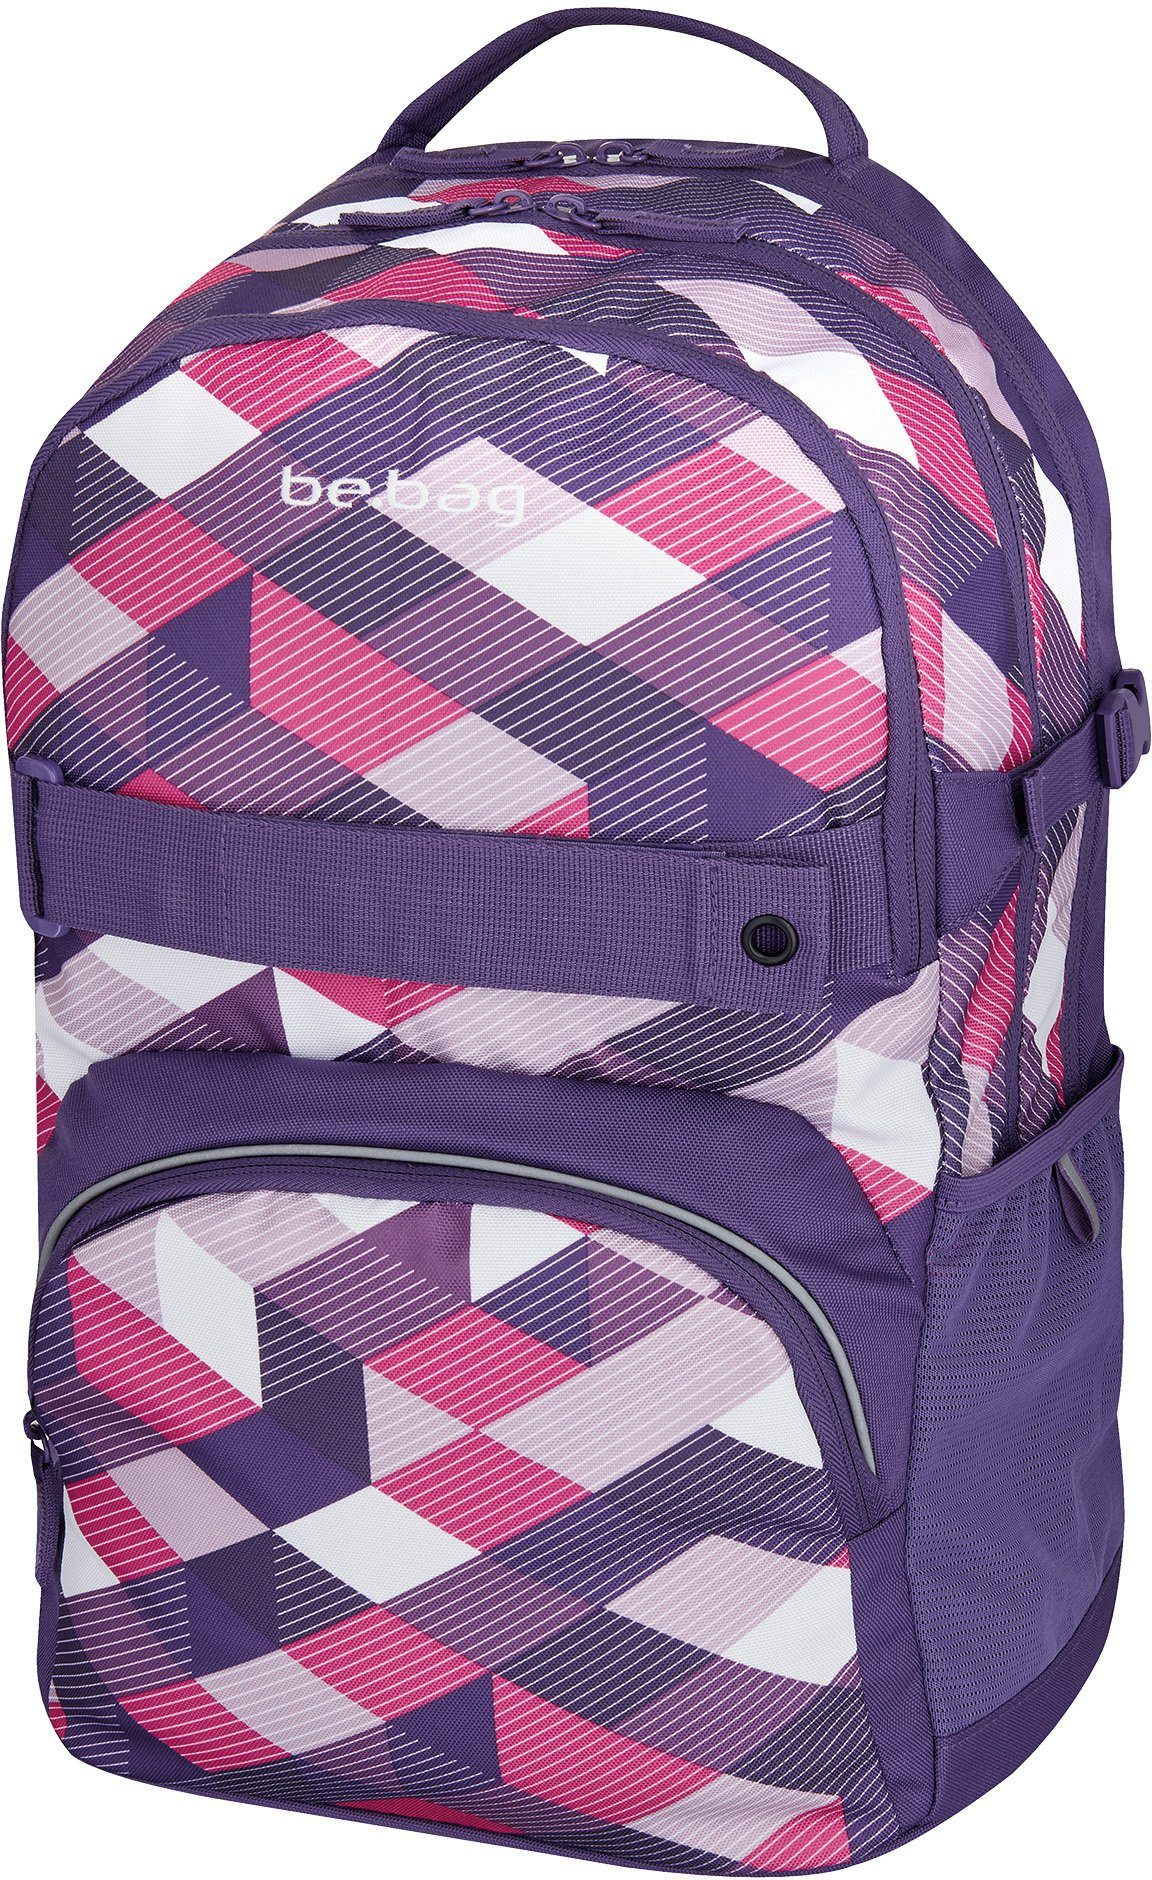 Herlitz Schulrucksack, »be.bag cube, Purple Checked«